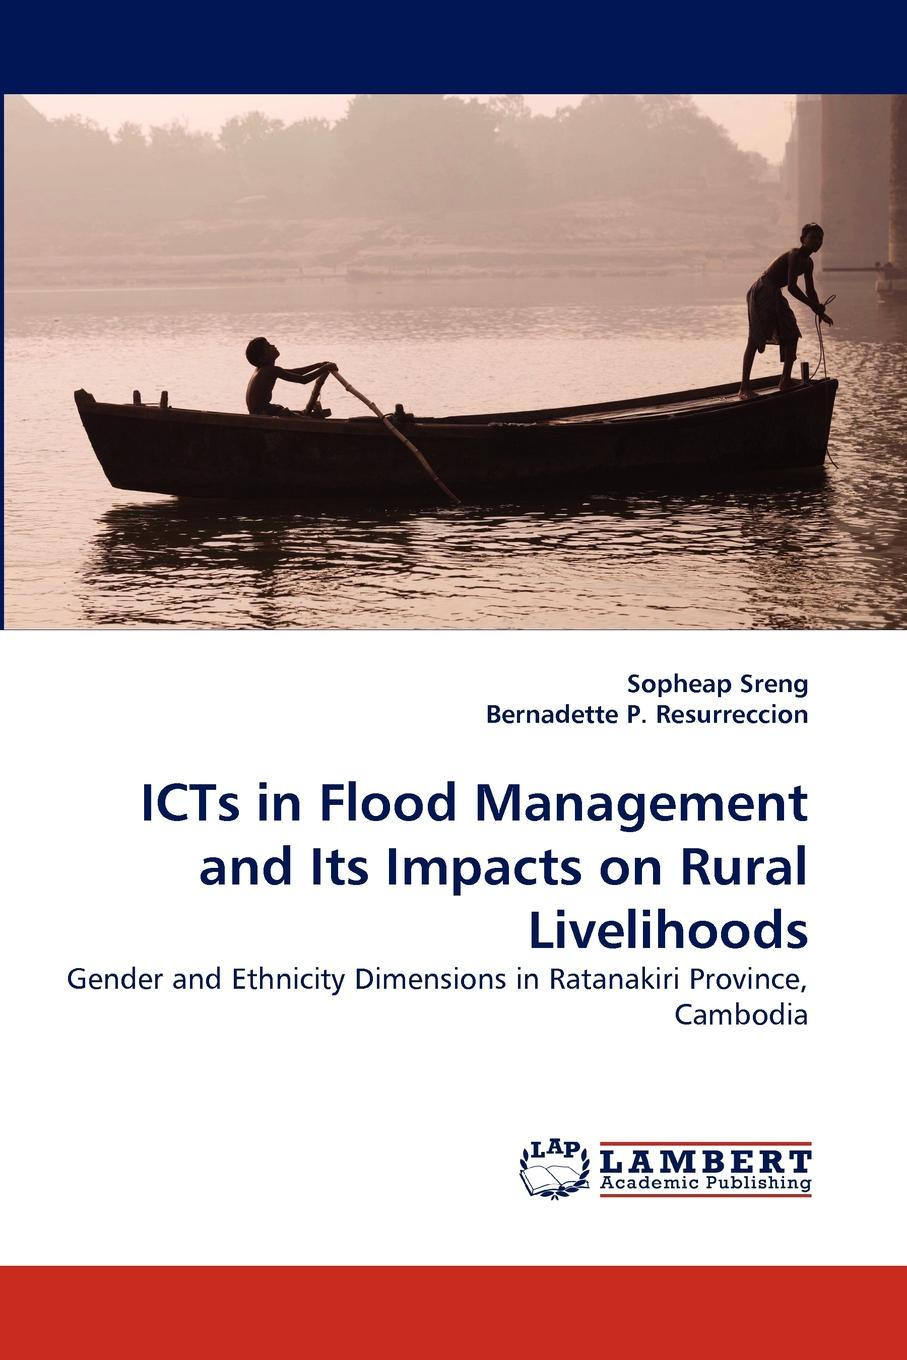 Sopheap Sreng, Bernadette P. Resurreccion ICTs in Flood Management and Its Impacts on Rural Livelihoods surafel mamo woldegbrael flood forecasting conterol and modeling for flood risk management systems